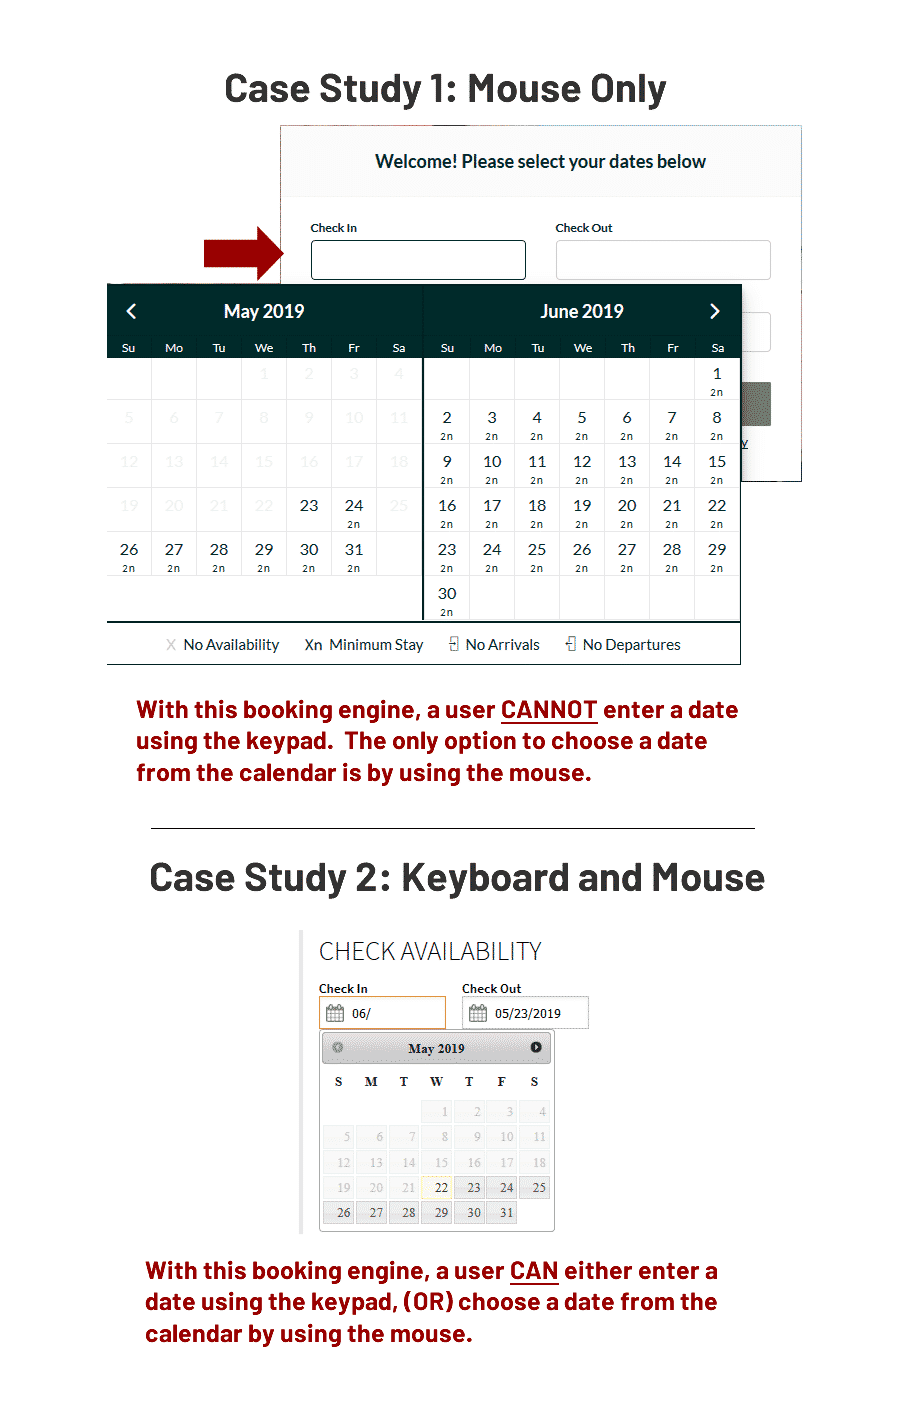 example of 2 booking engines with calendar selection options